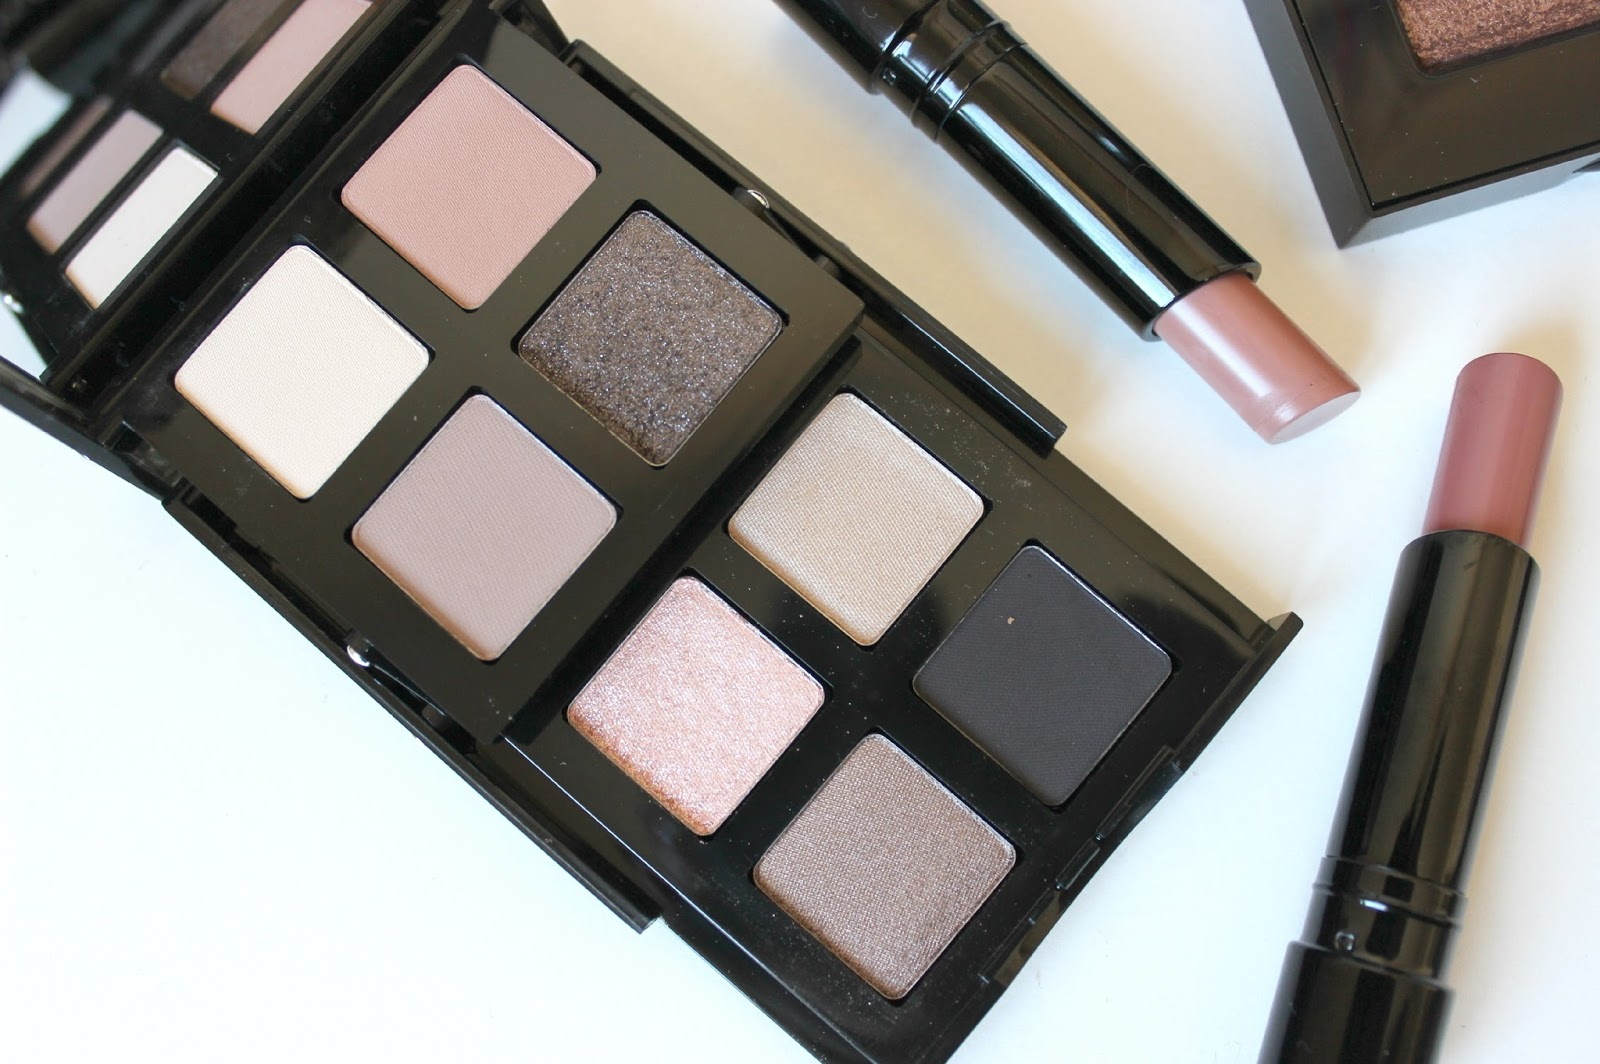 A picture of the Bobbi Brown Smokey Nudes Eye Palette